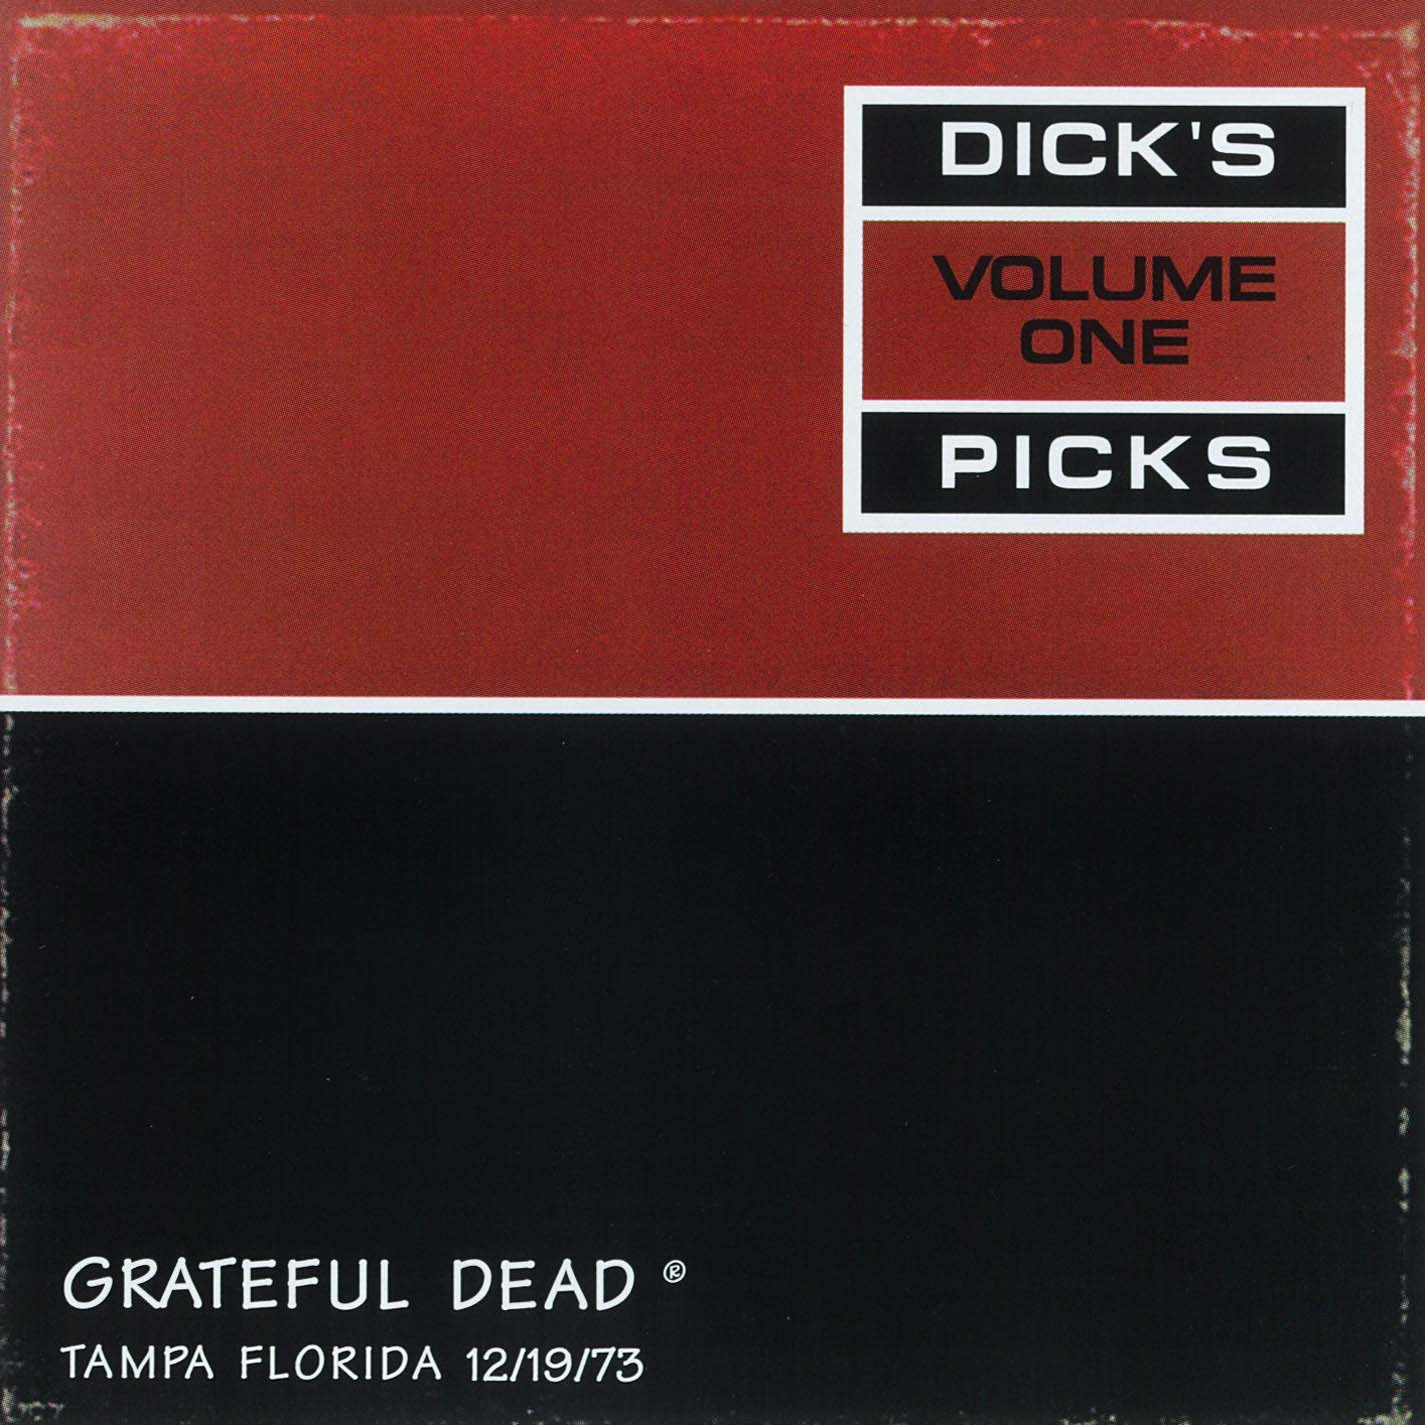 Grateful Dead Dick's Picks 1 album cover artwork